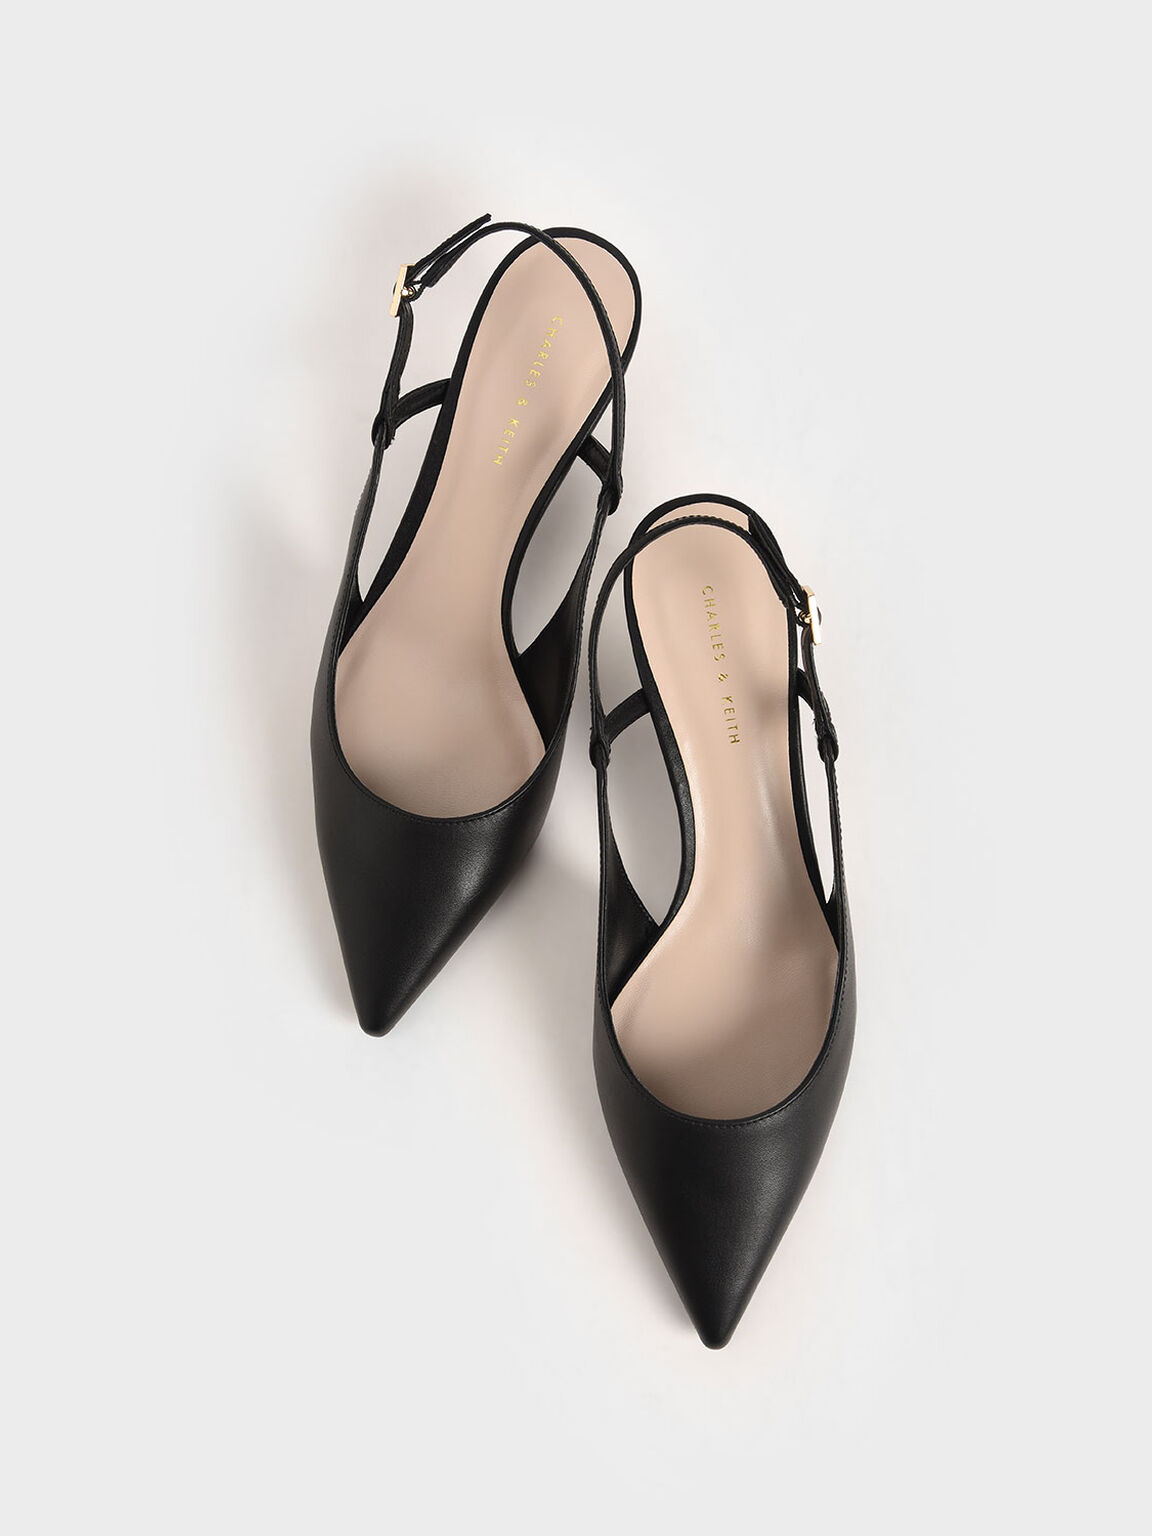 Cut-Out Slingback Kitten Heel Pumps, Black, hi-res